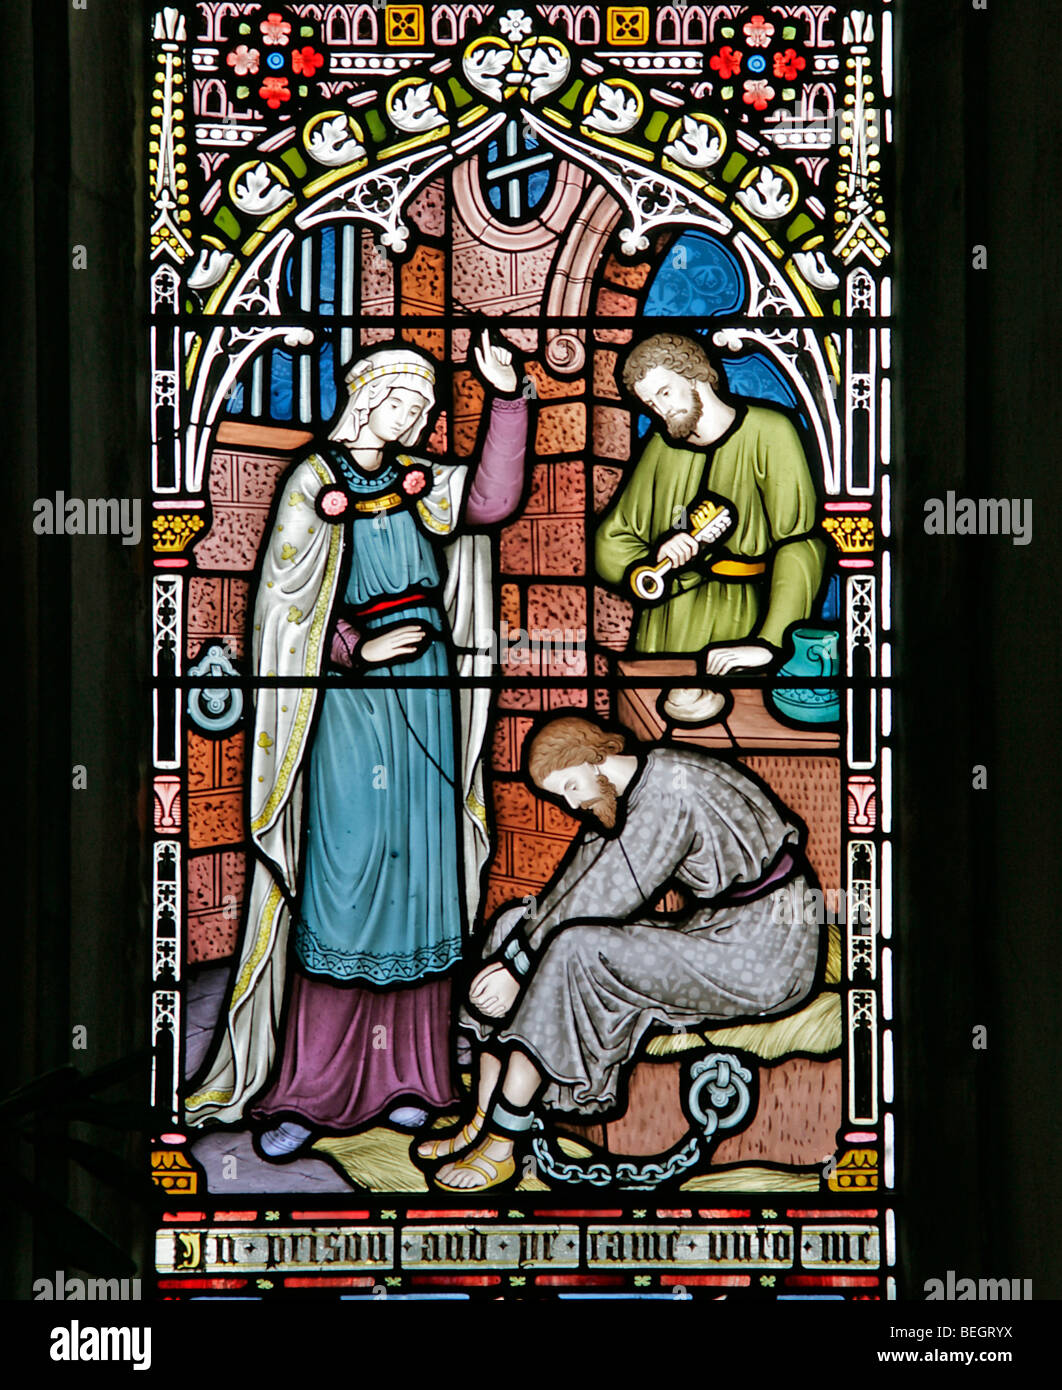 A Stained Glass Window Depicting The Parable Of The Sheep